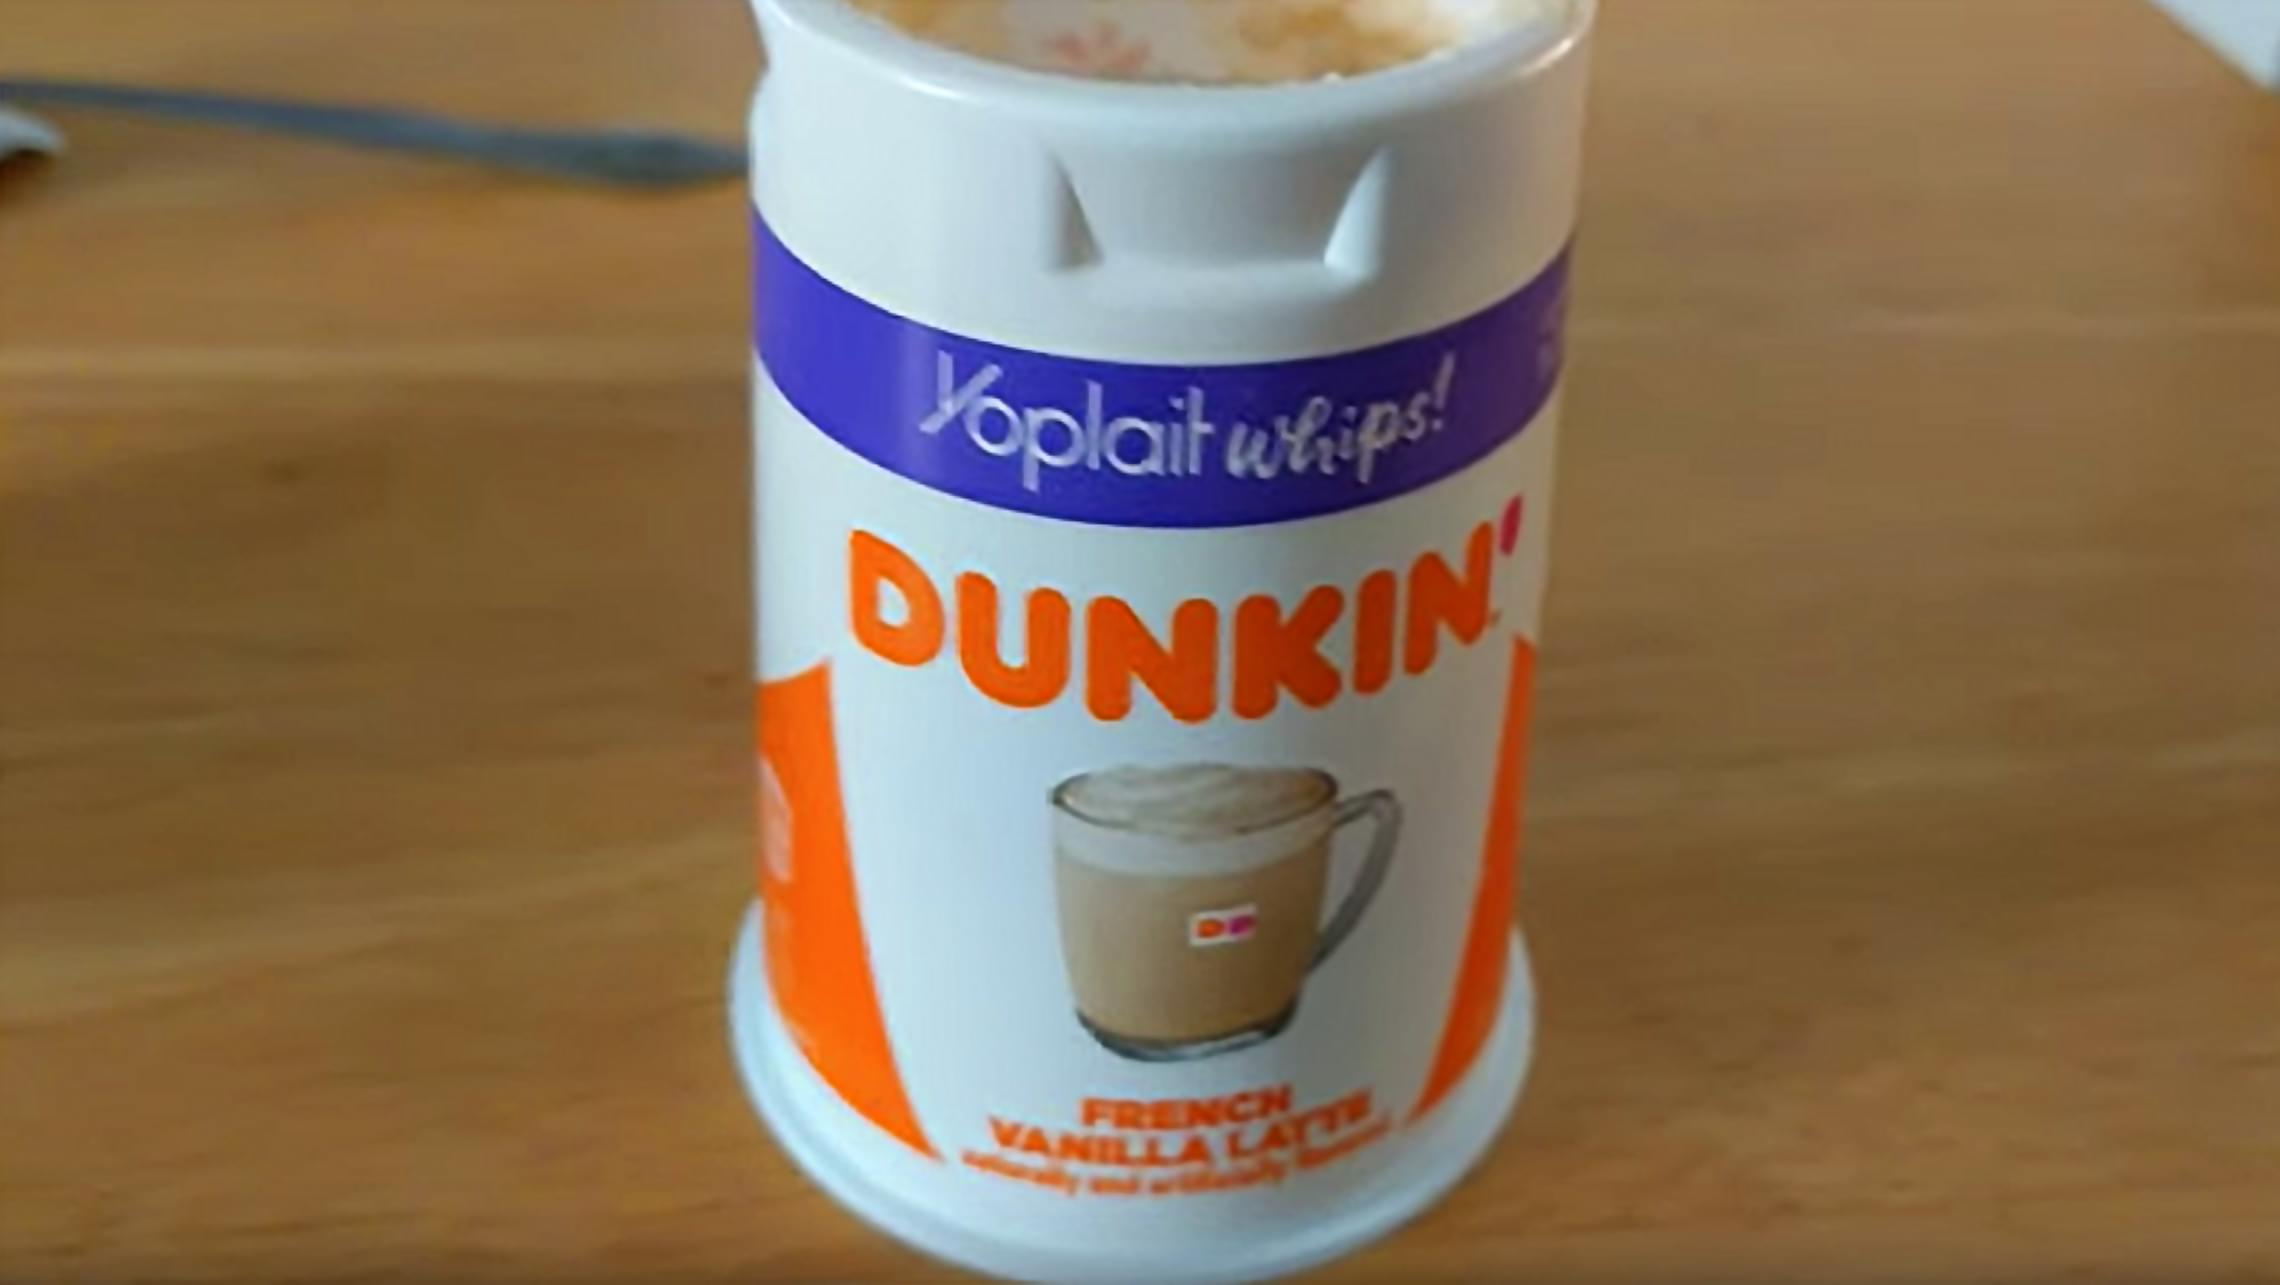 Yoplait's new Dunkin'-flavored yogurts are inspired by your favorite doughnuts